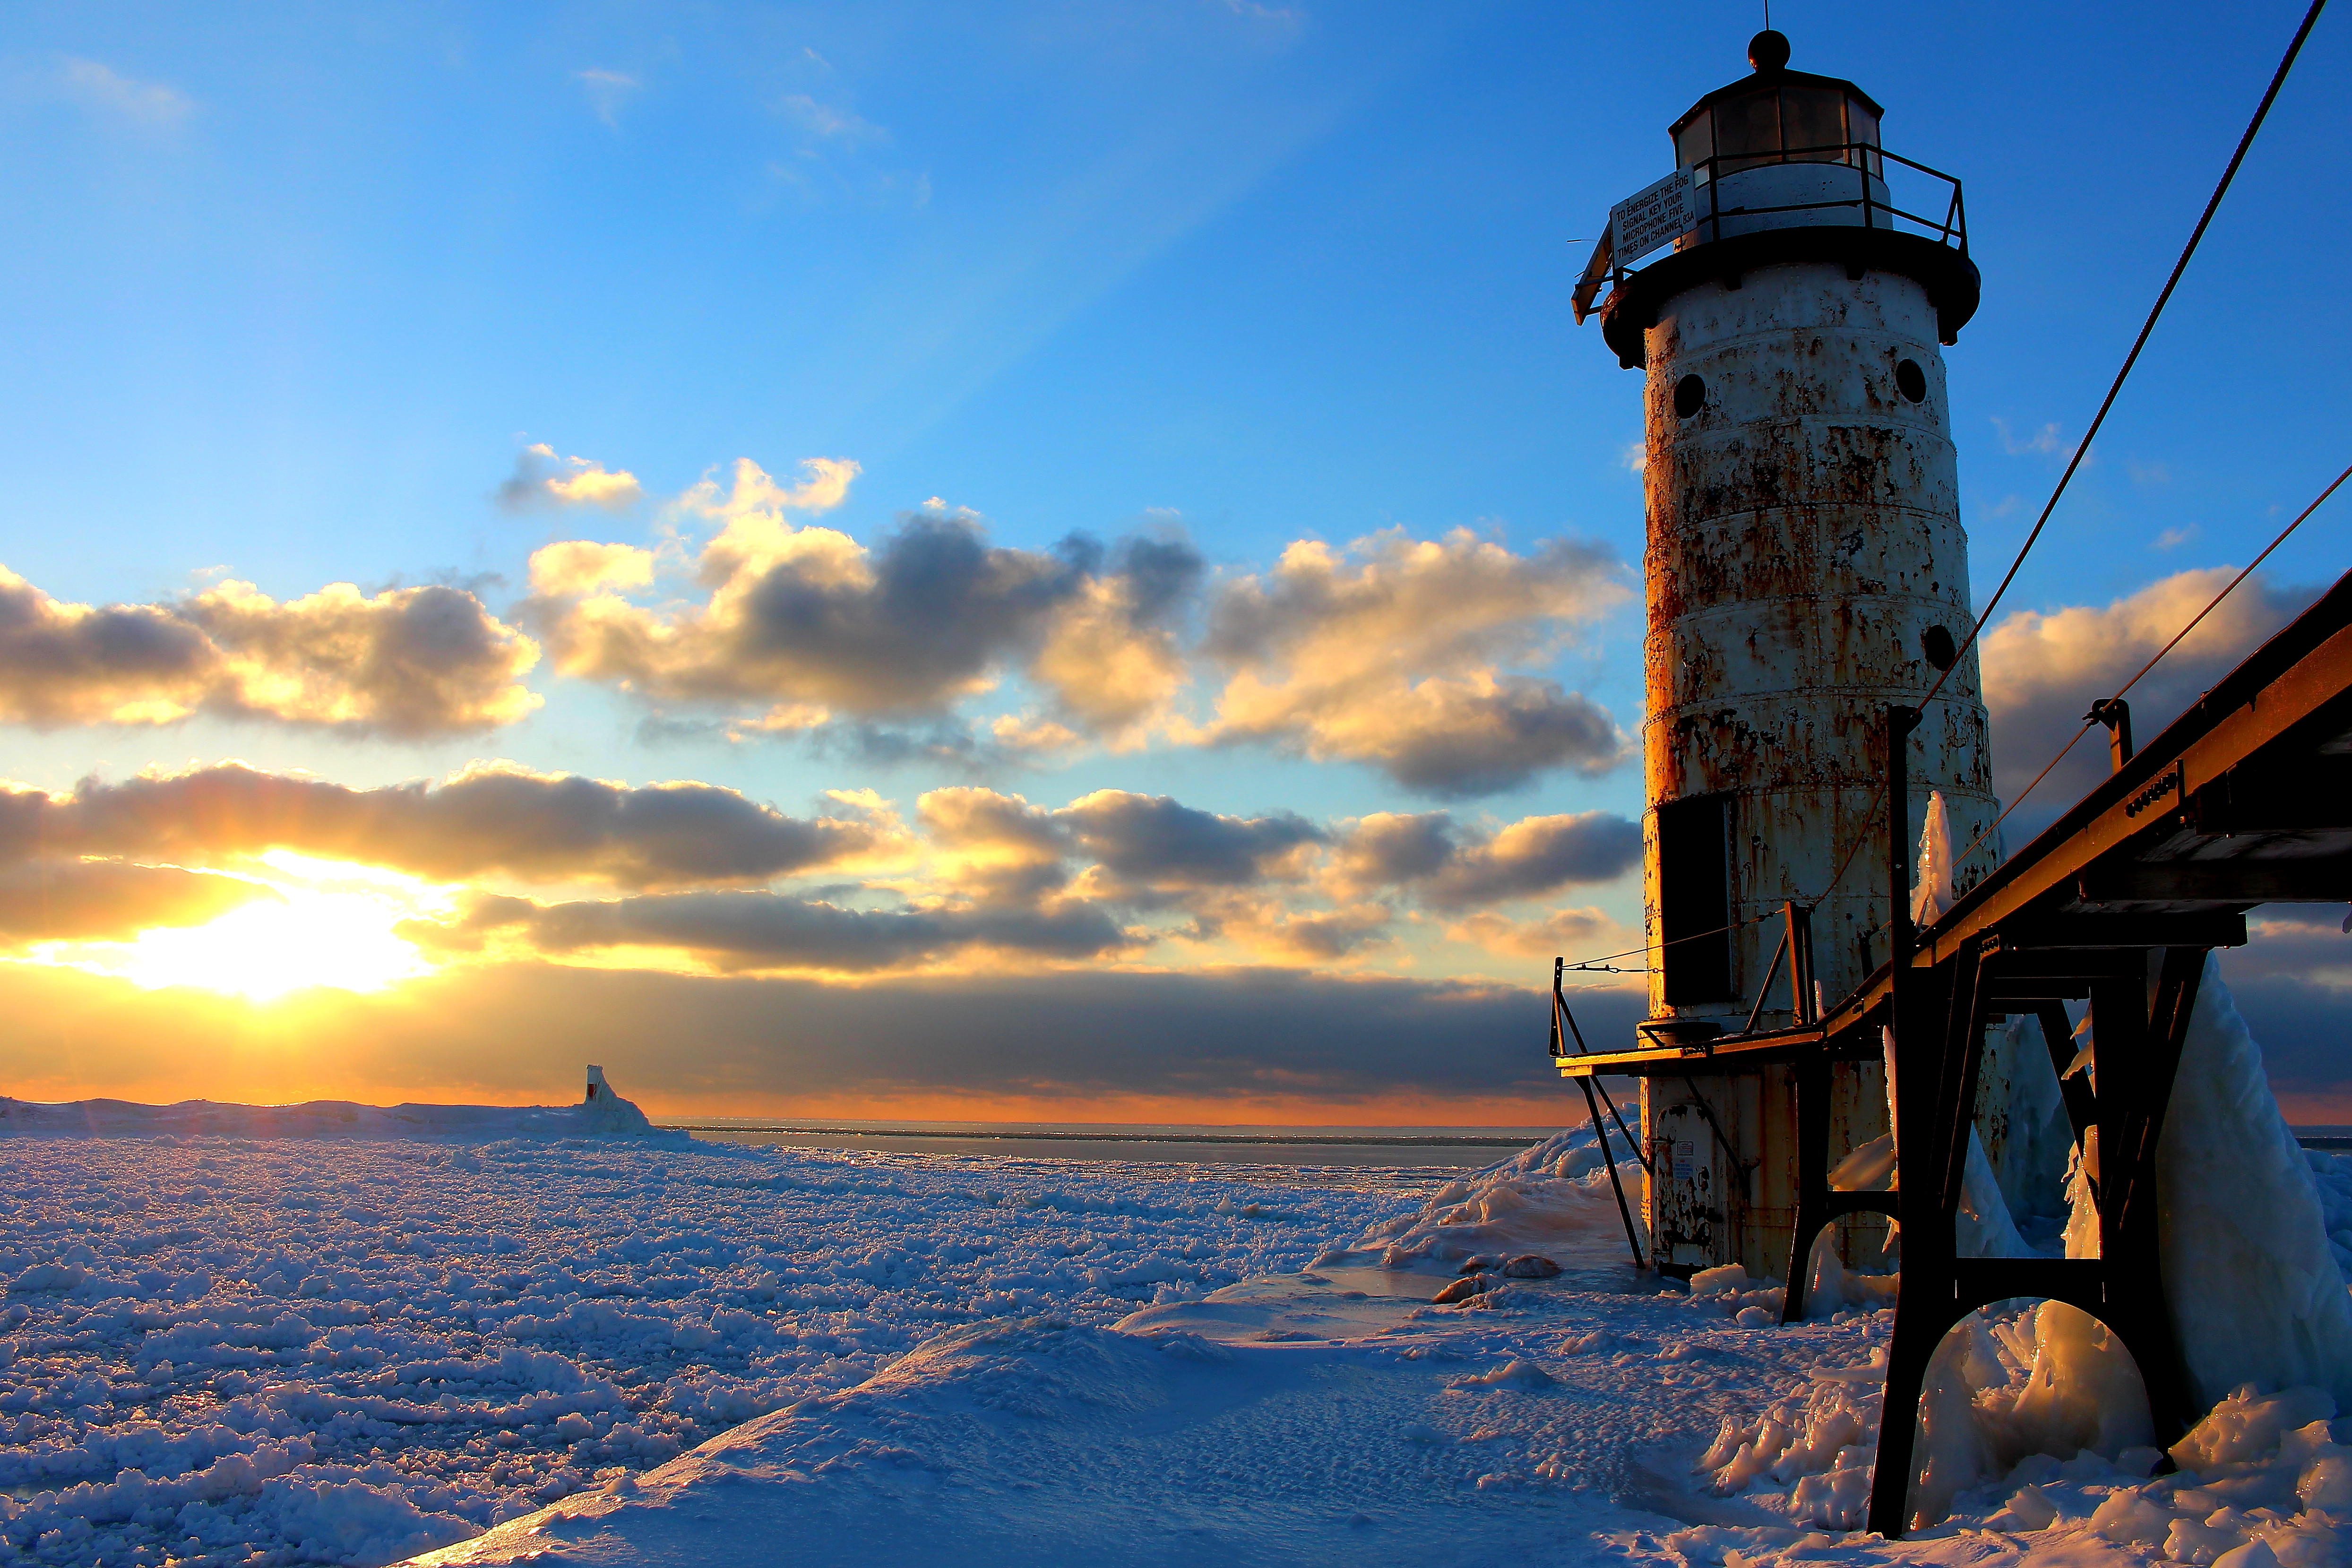 A beautiful winter day at Fifth Avenue Lighthouse with snow and ice